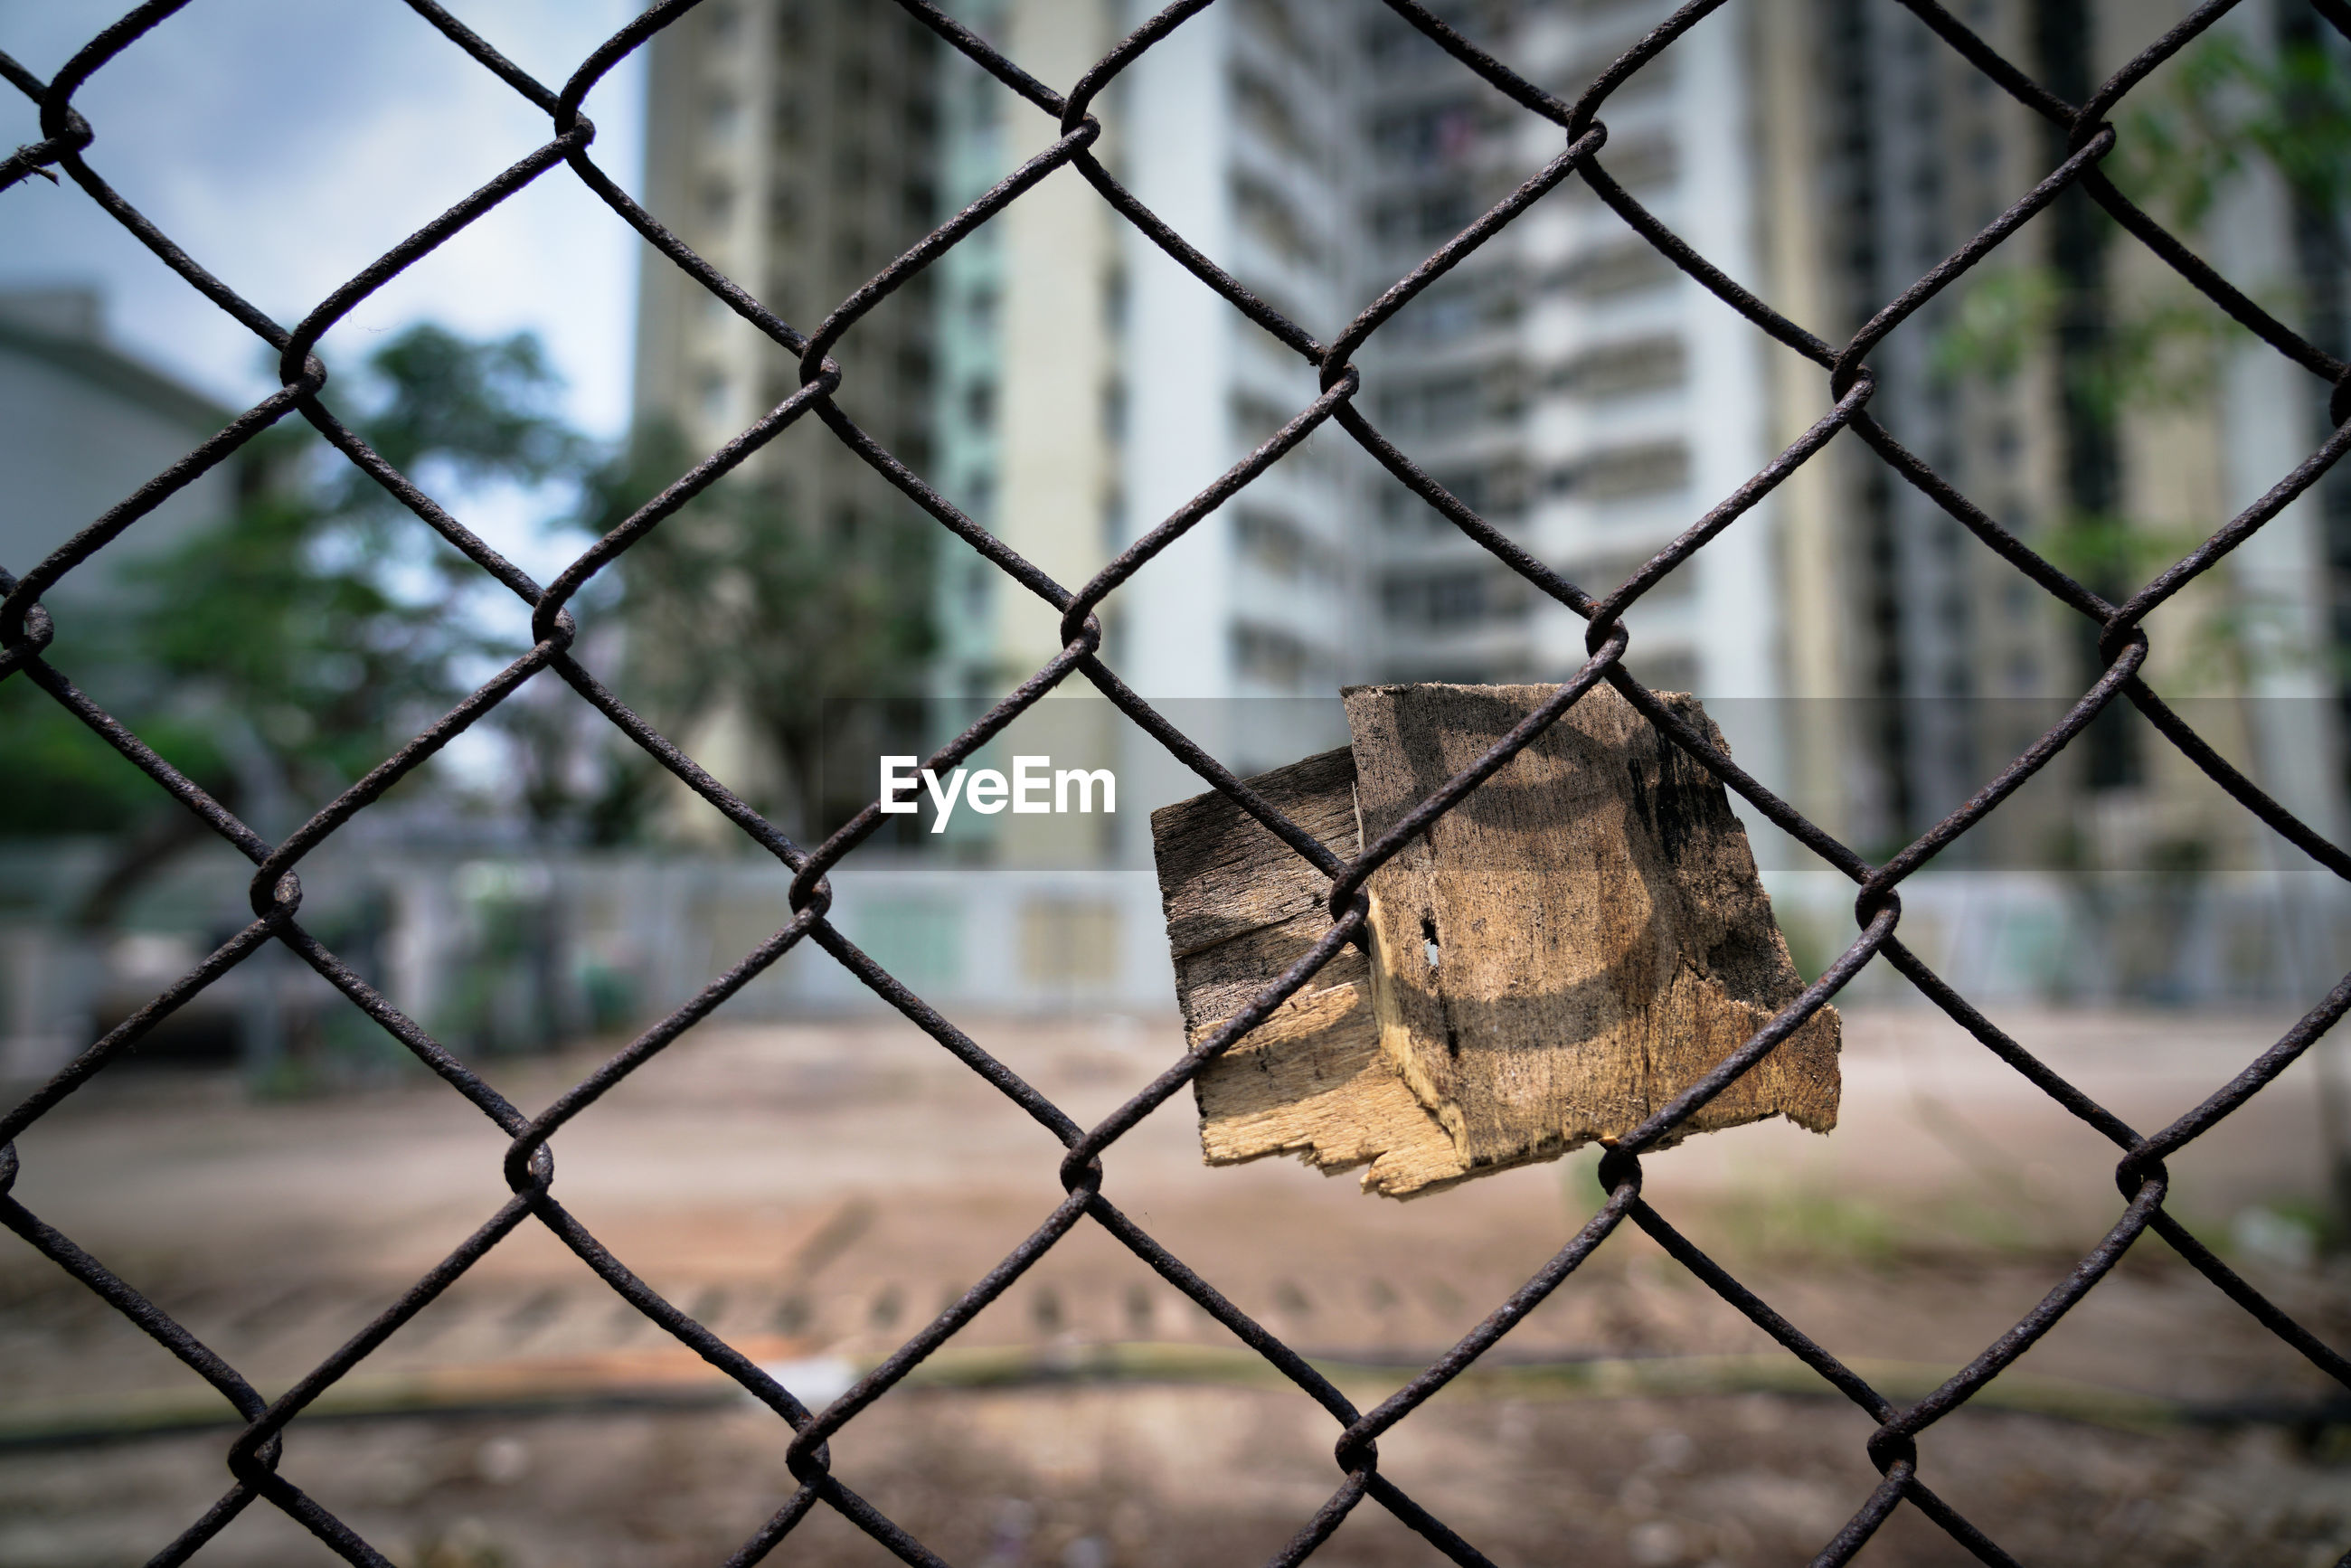 CLOSE-UP OF PADLOCK ON CHAINLINK FENCE AGAINST BLURRED BACKGROUND